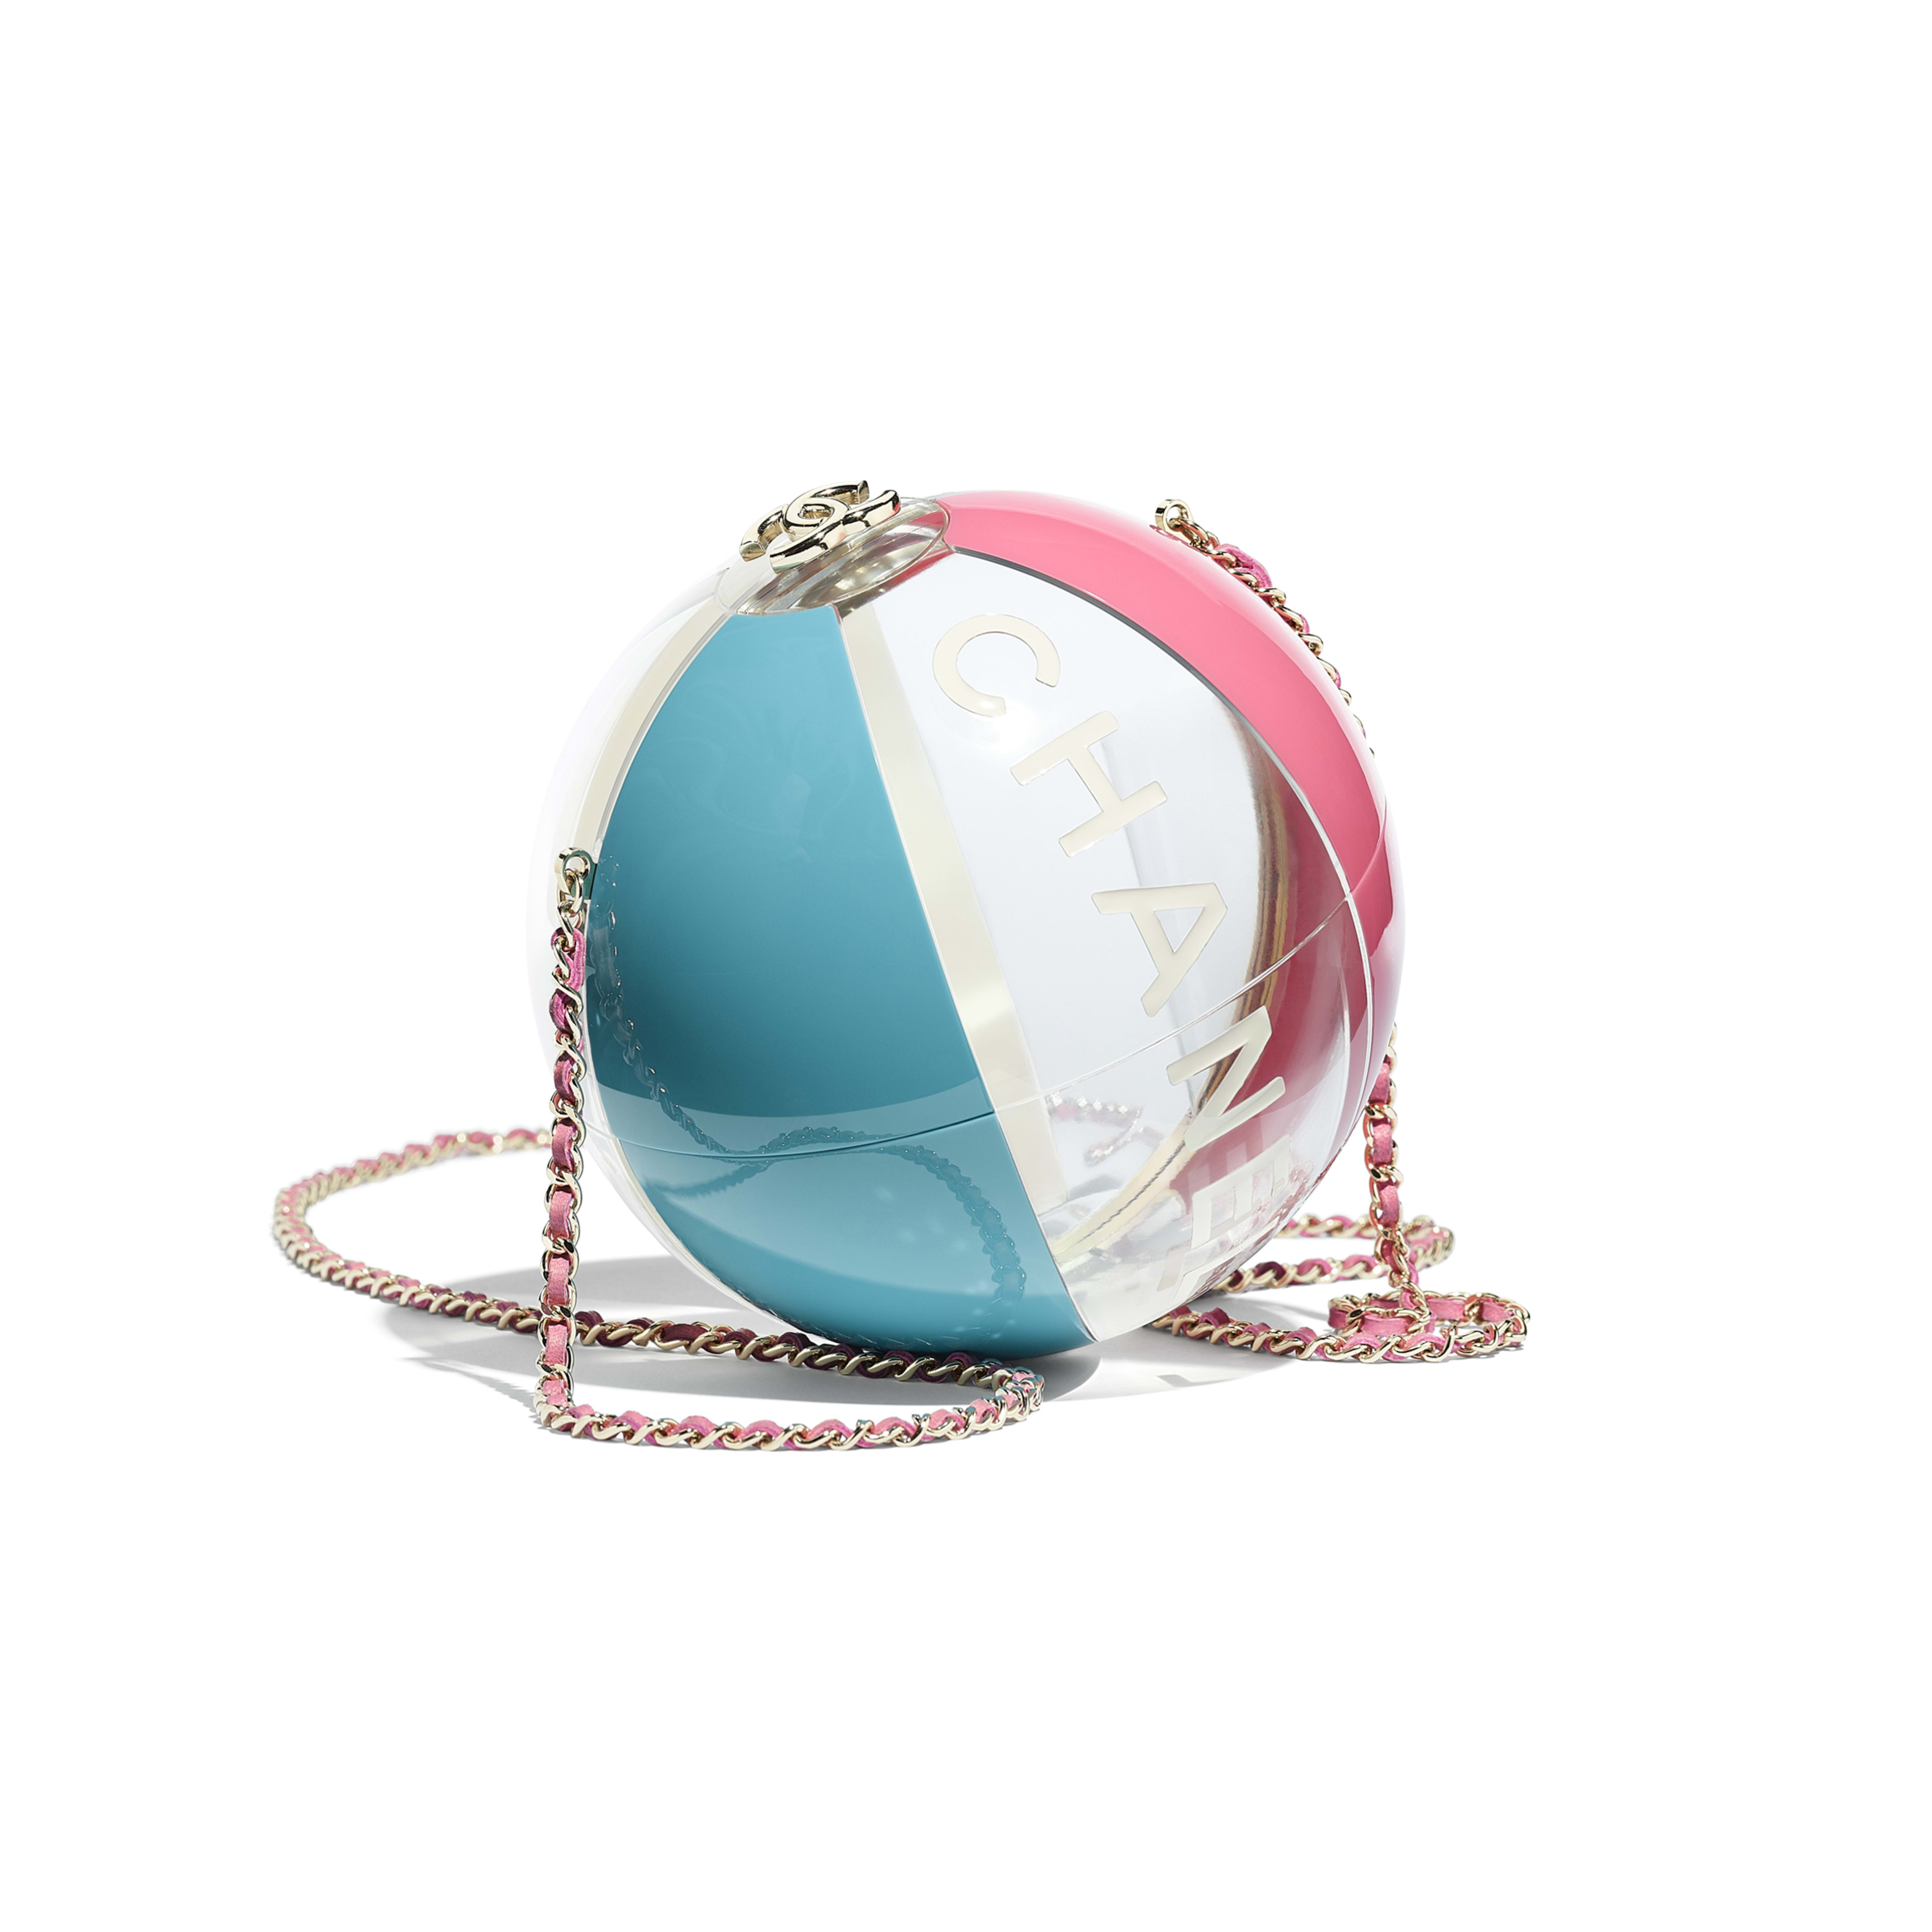 Beach Ball Minaudiere - Turquoise, Pink, White & Transparent - Resin & Gold-Tone Metal - Default view - see full sized version